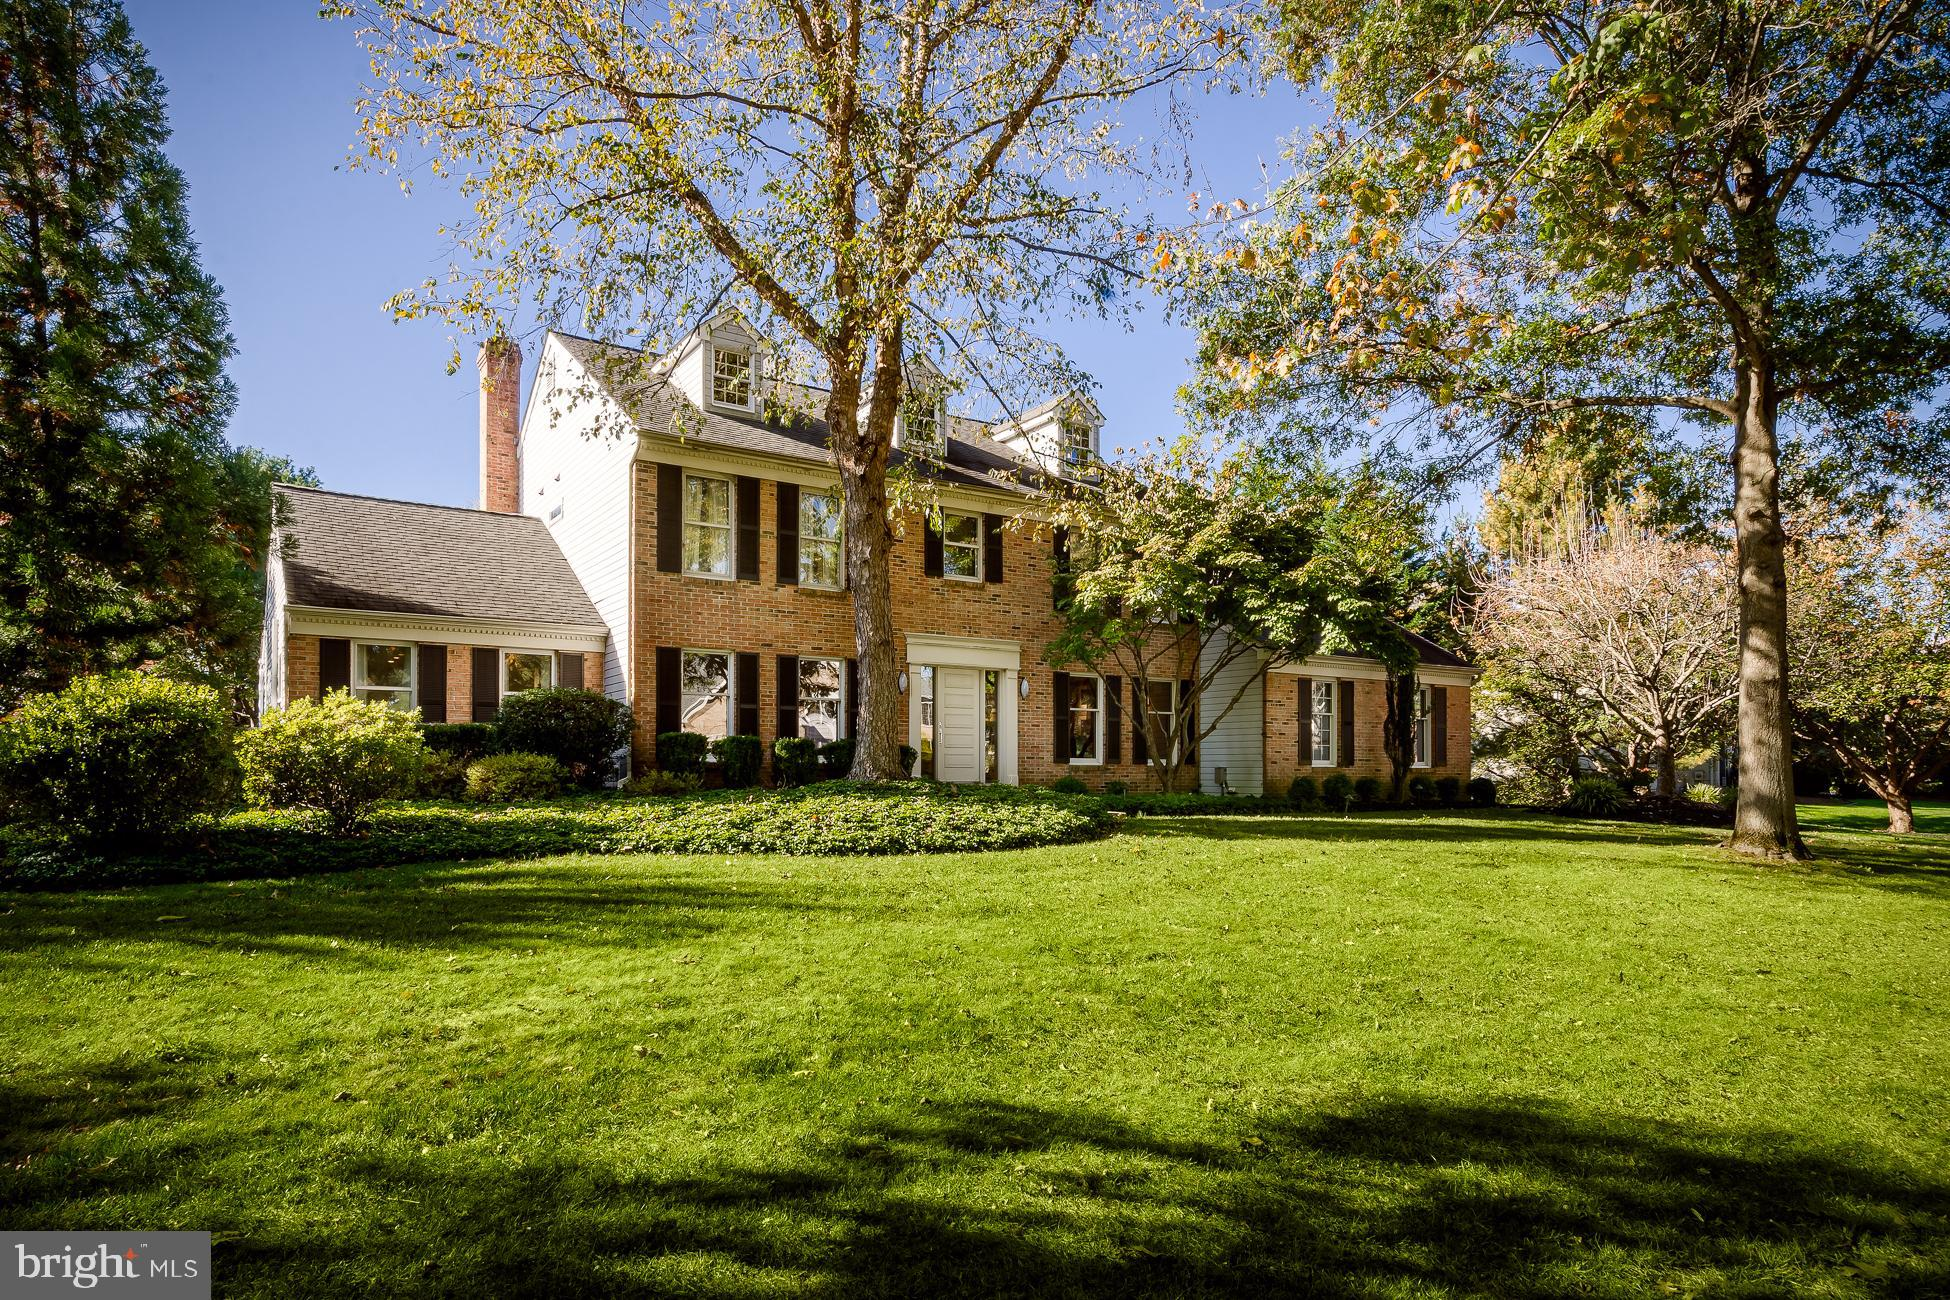 3 ARDSLEY COURT, WEST WINDSOR, NJ 08550